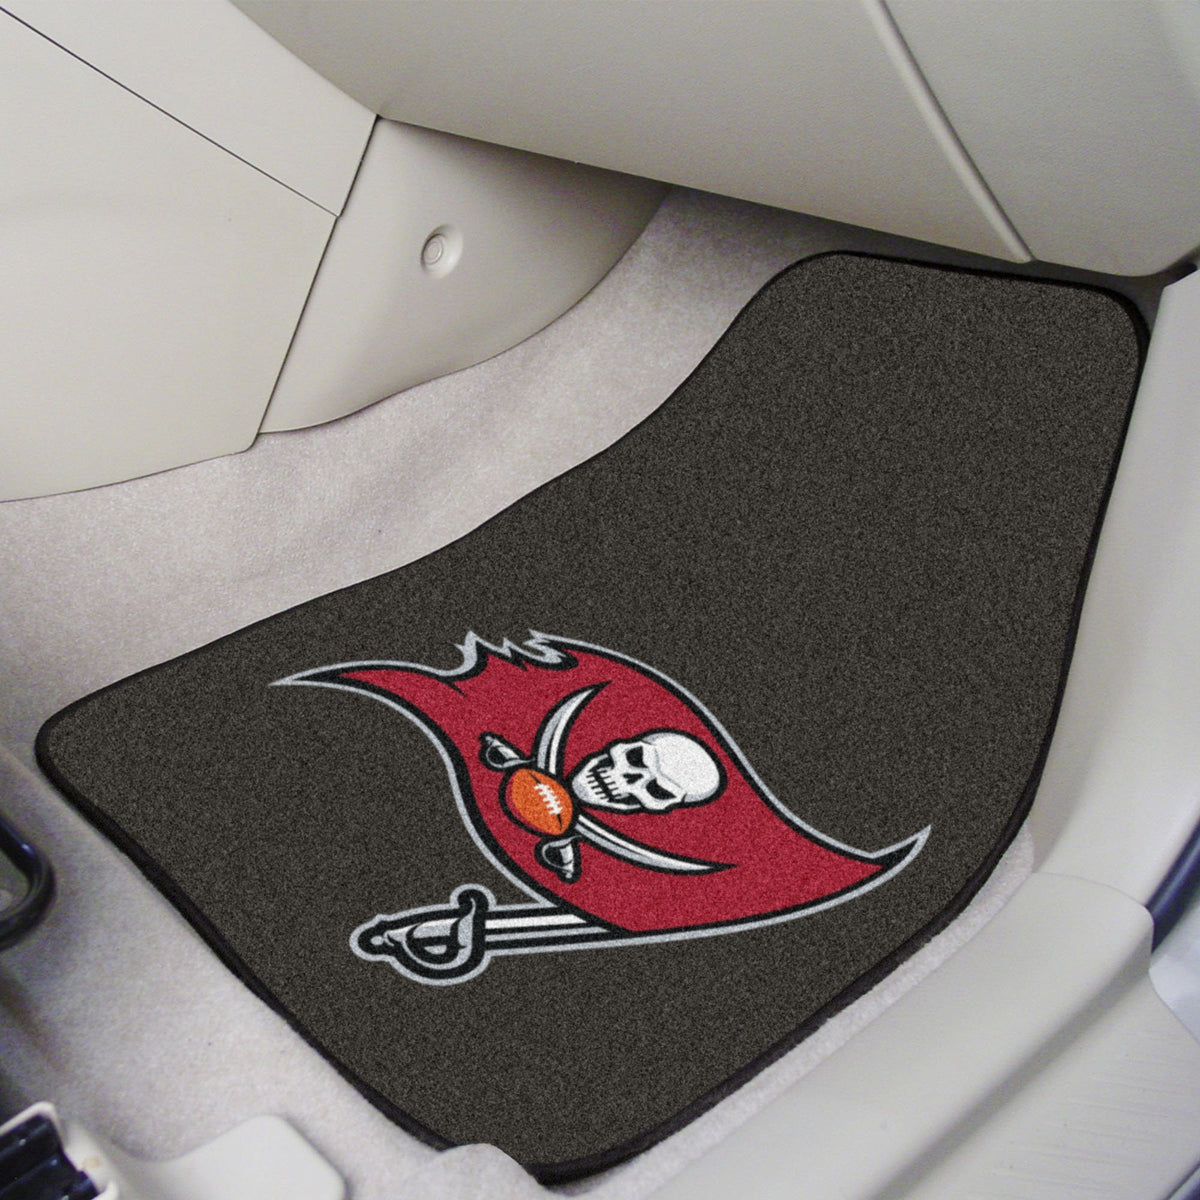 "NFL - 2-pc Carpet Car Mat Set, 17"" x 27"" NFL Mats, Front Car Mats, 2-pc Carpet Car Mat Set, NFL, Auto Fan Mats Tampa Bay Buccaneers"